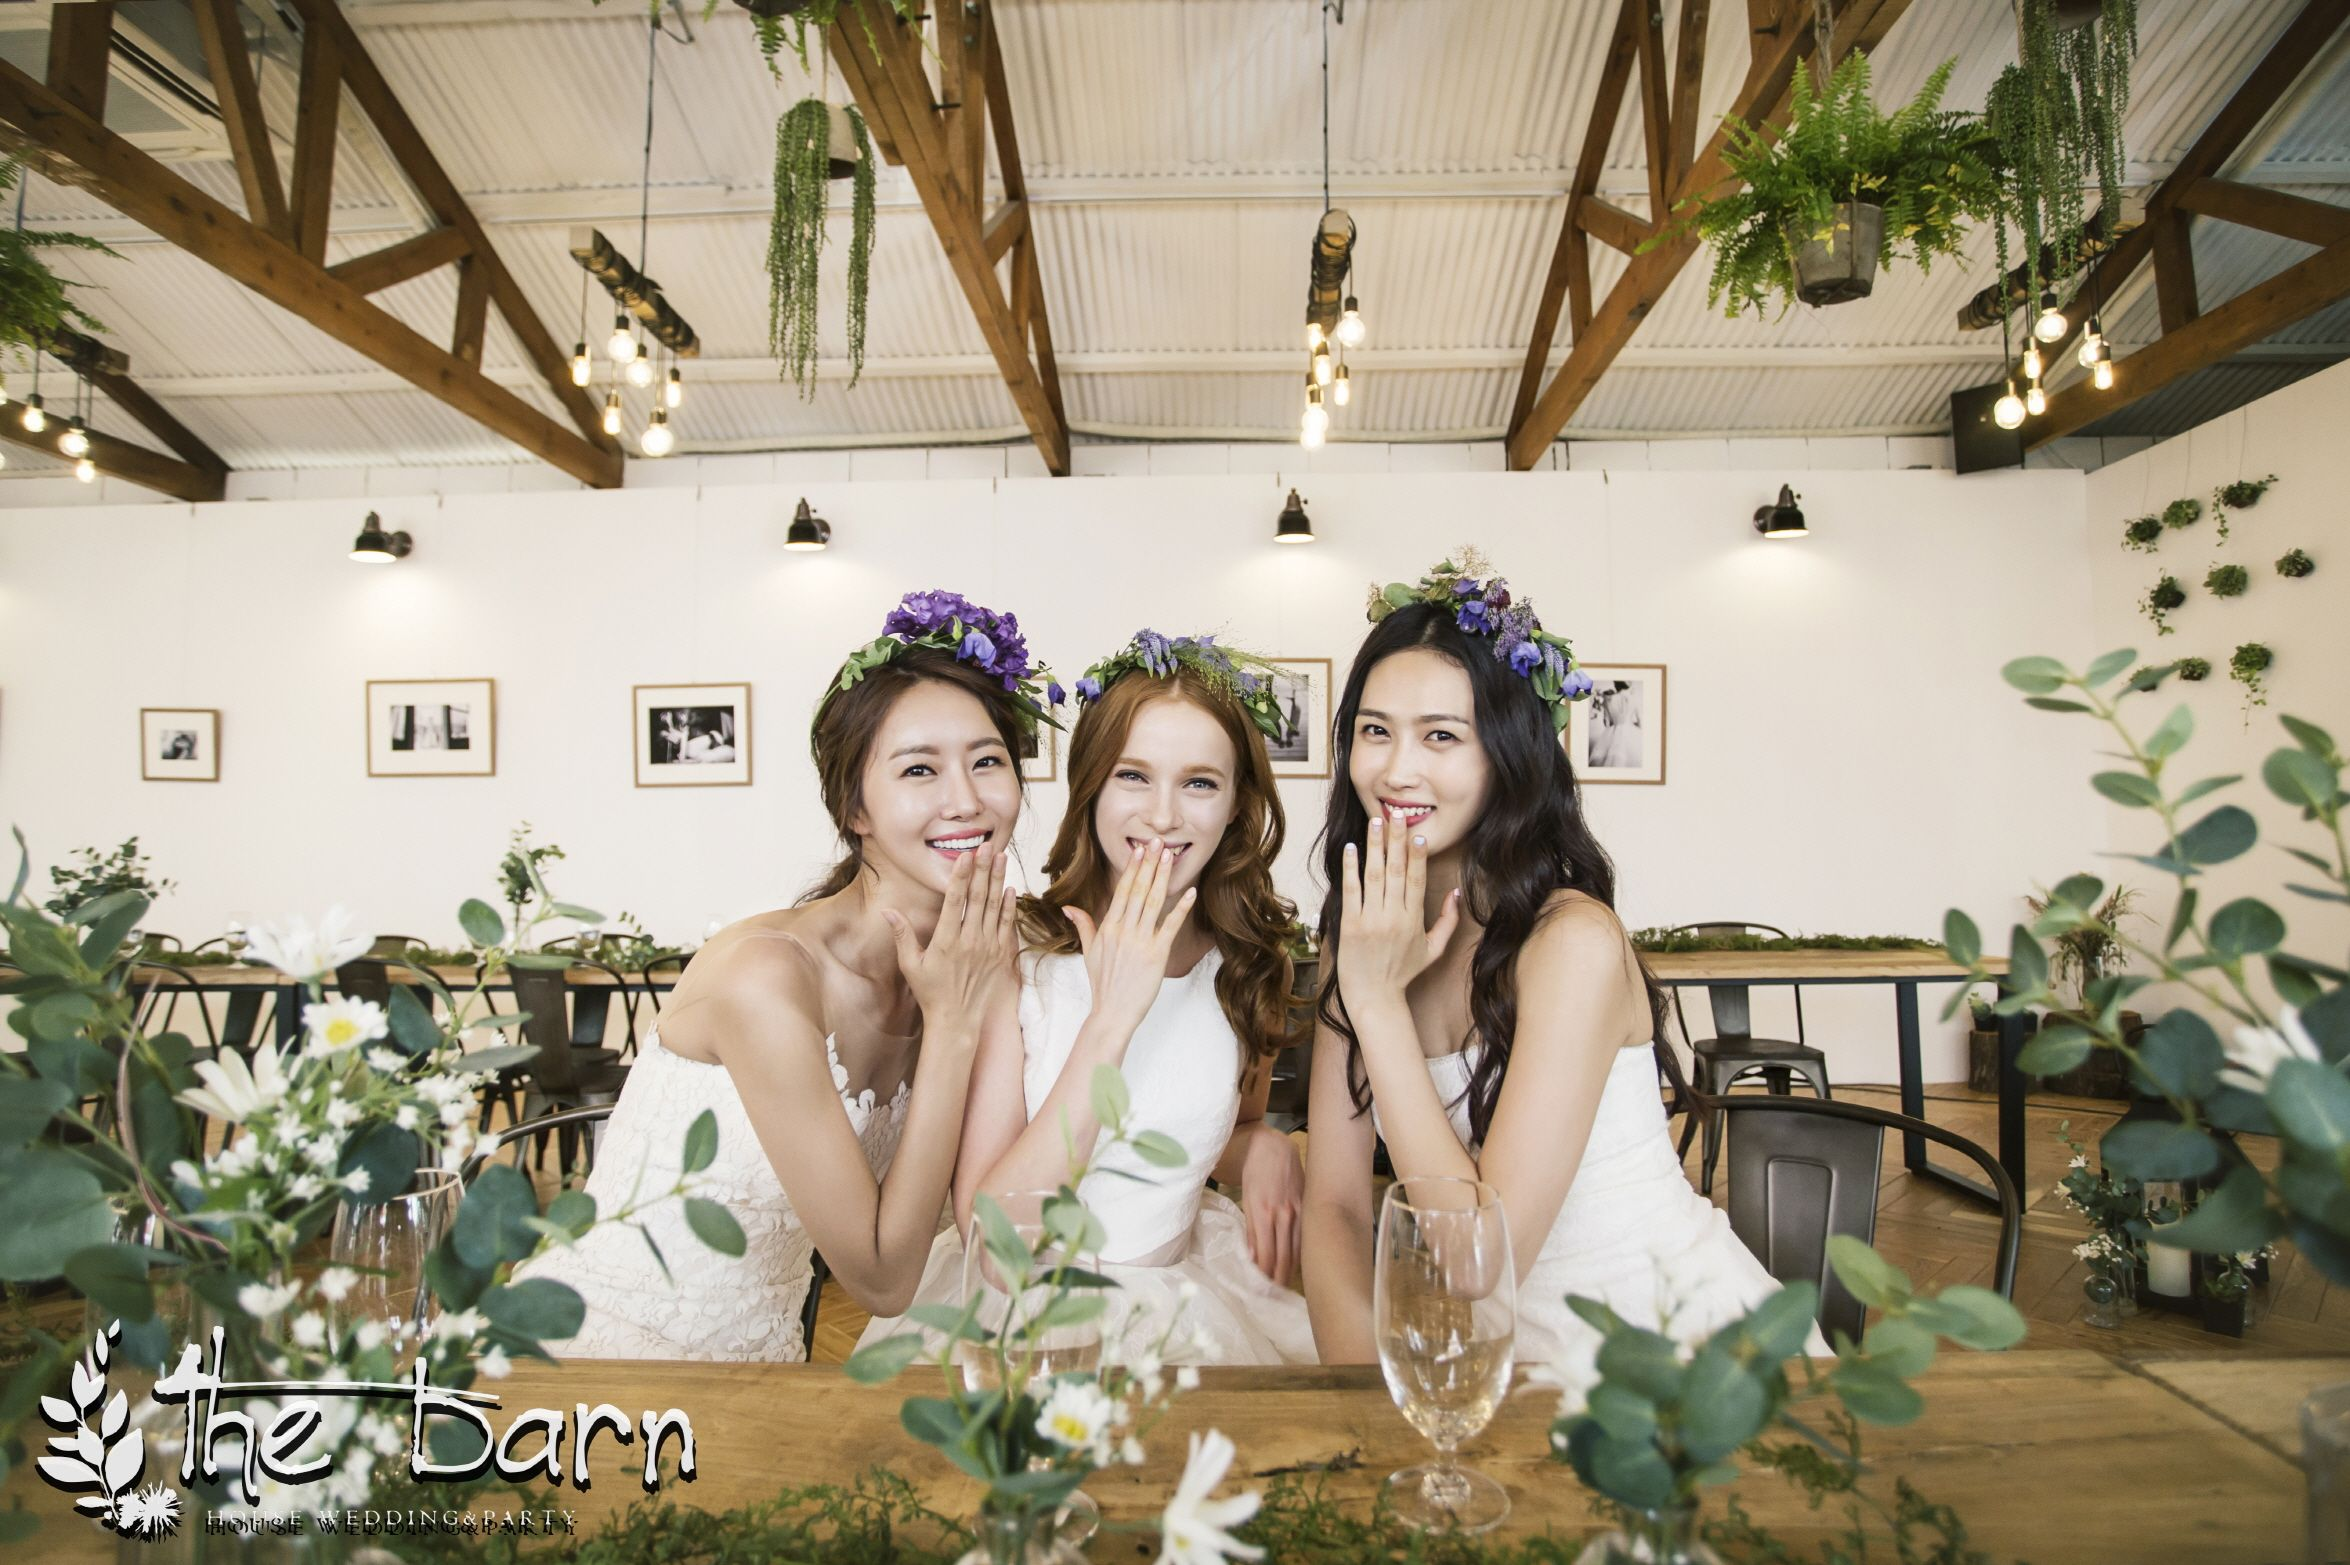 wedding ceremony wording samples%0A Korea Sum Studio Sample  u    The Barn u     Contact sumstudio sumstudio co